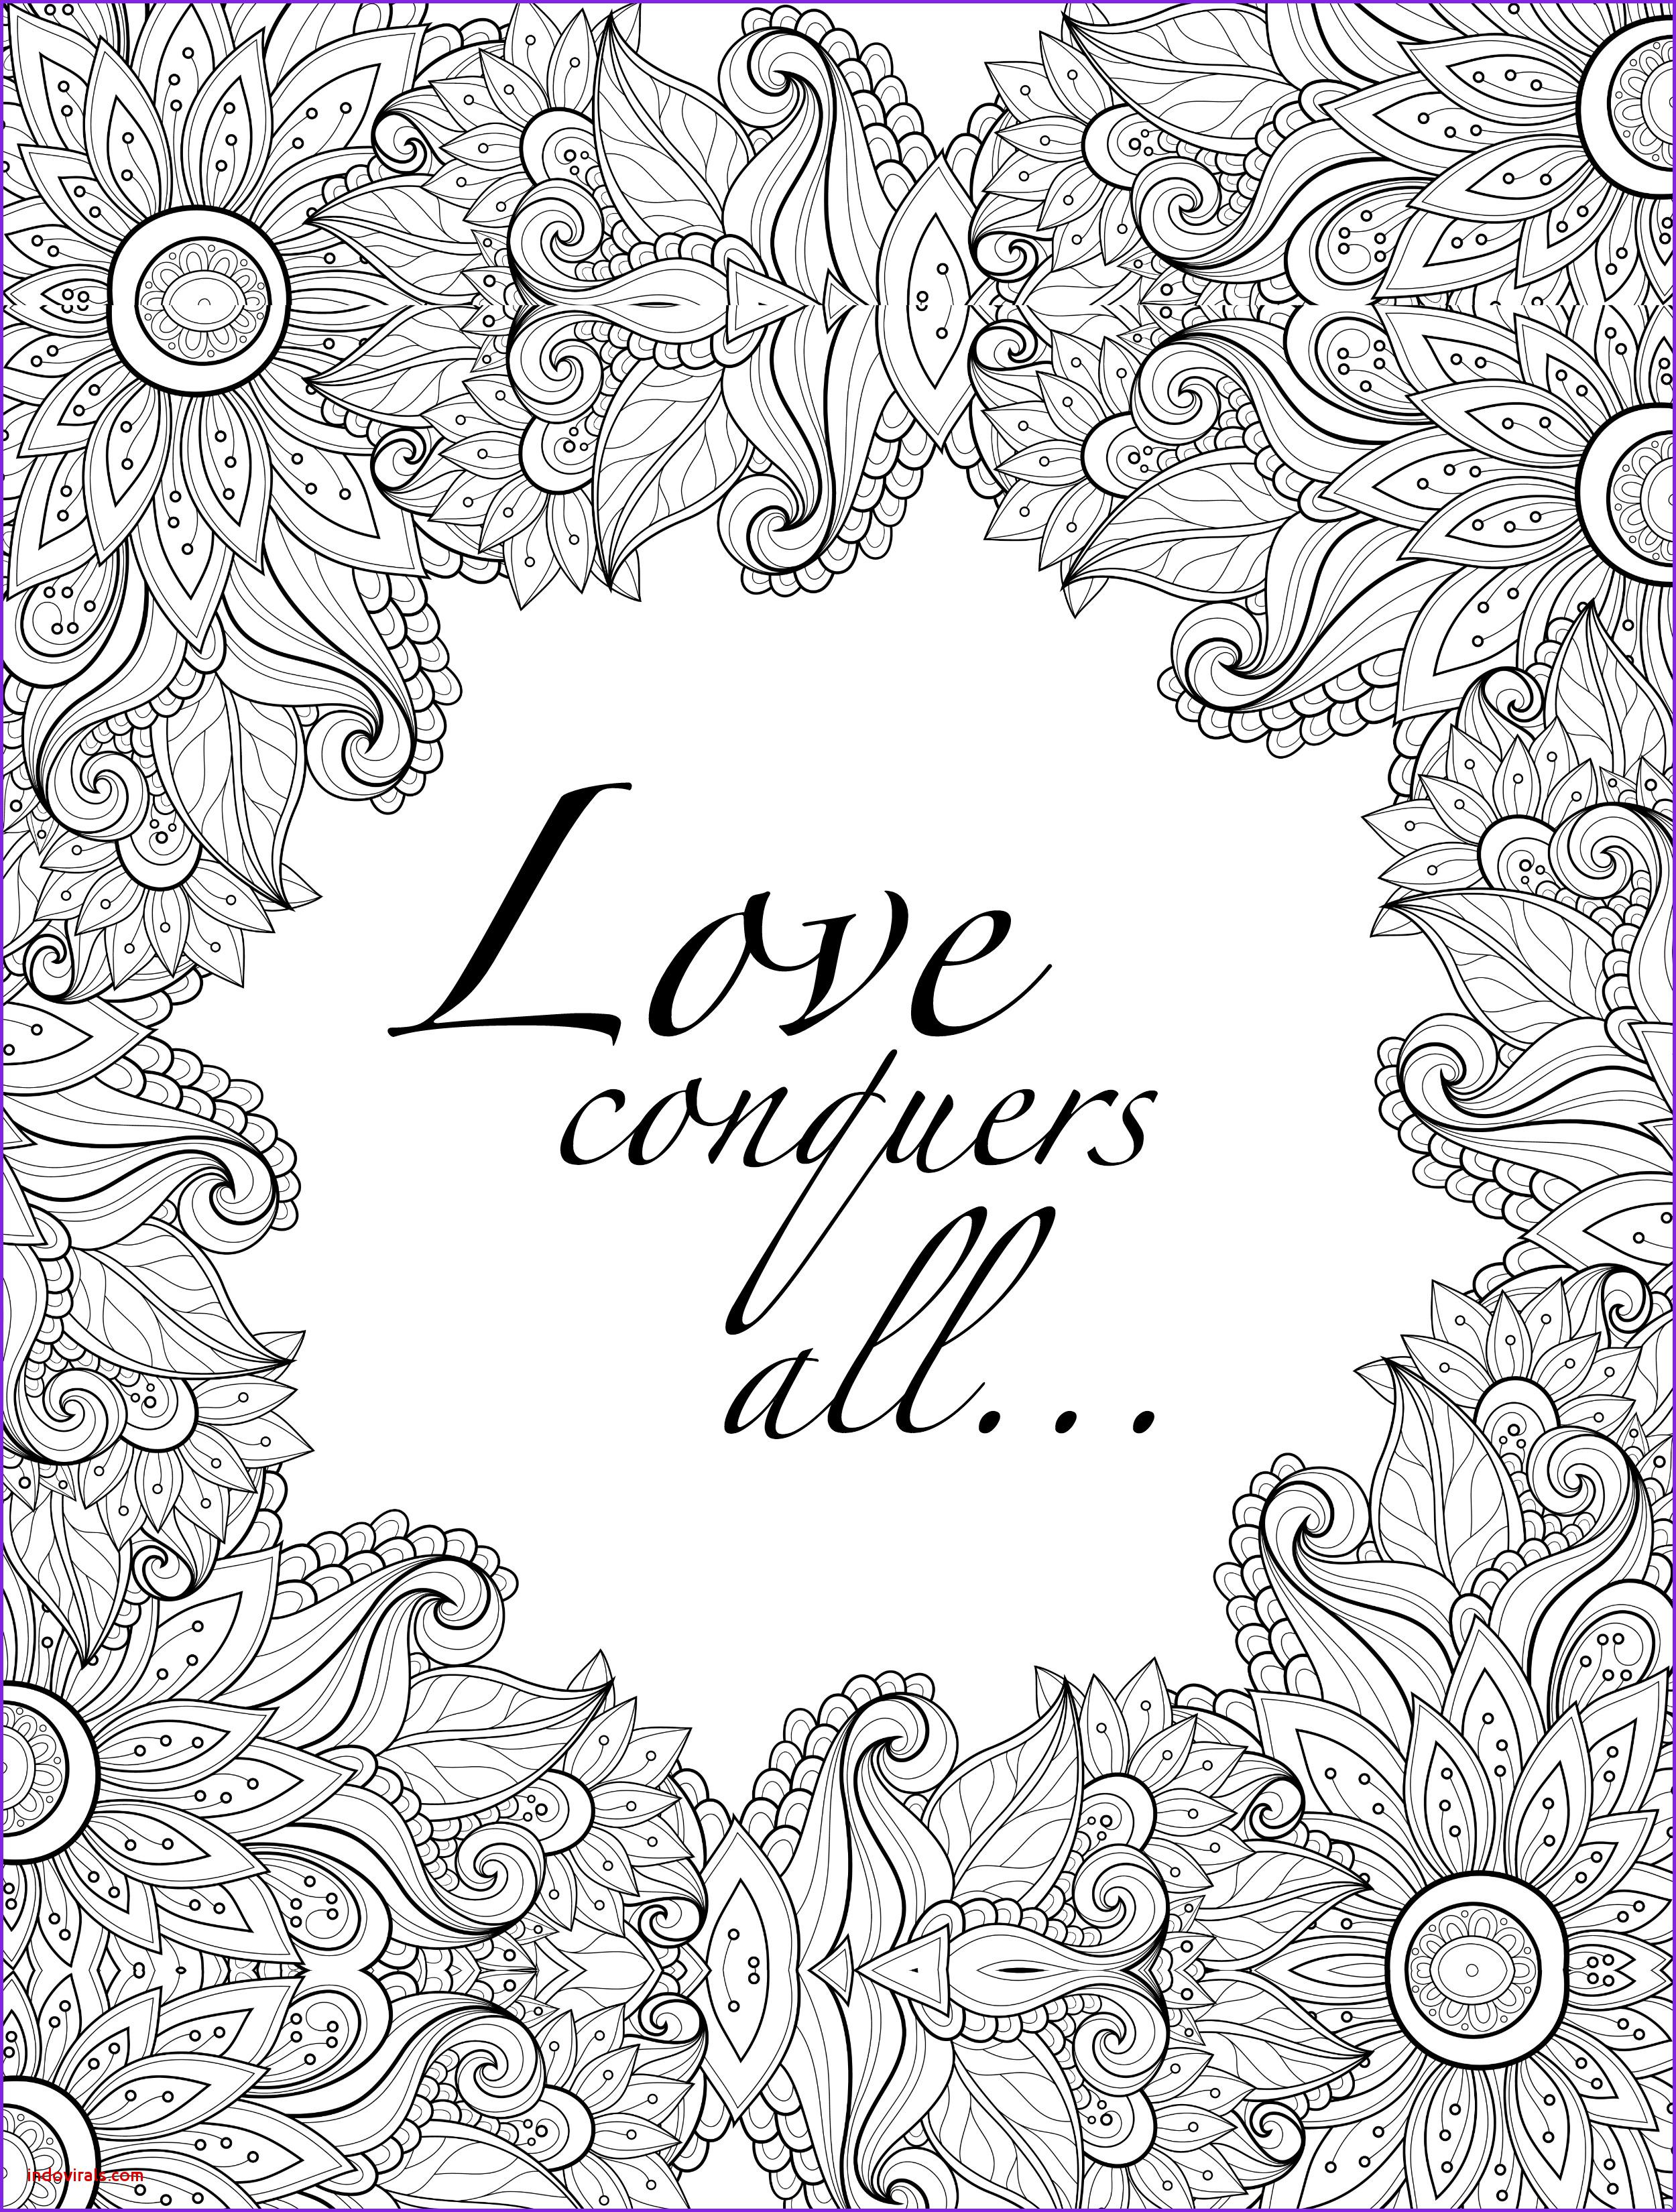 Valentines Day Coloring Pages For Adults Lovely Valentines Day Coloring Pages For Adults Ideas Coloring Page